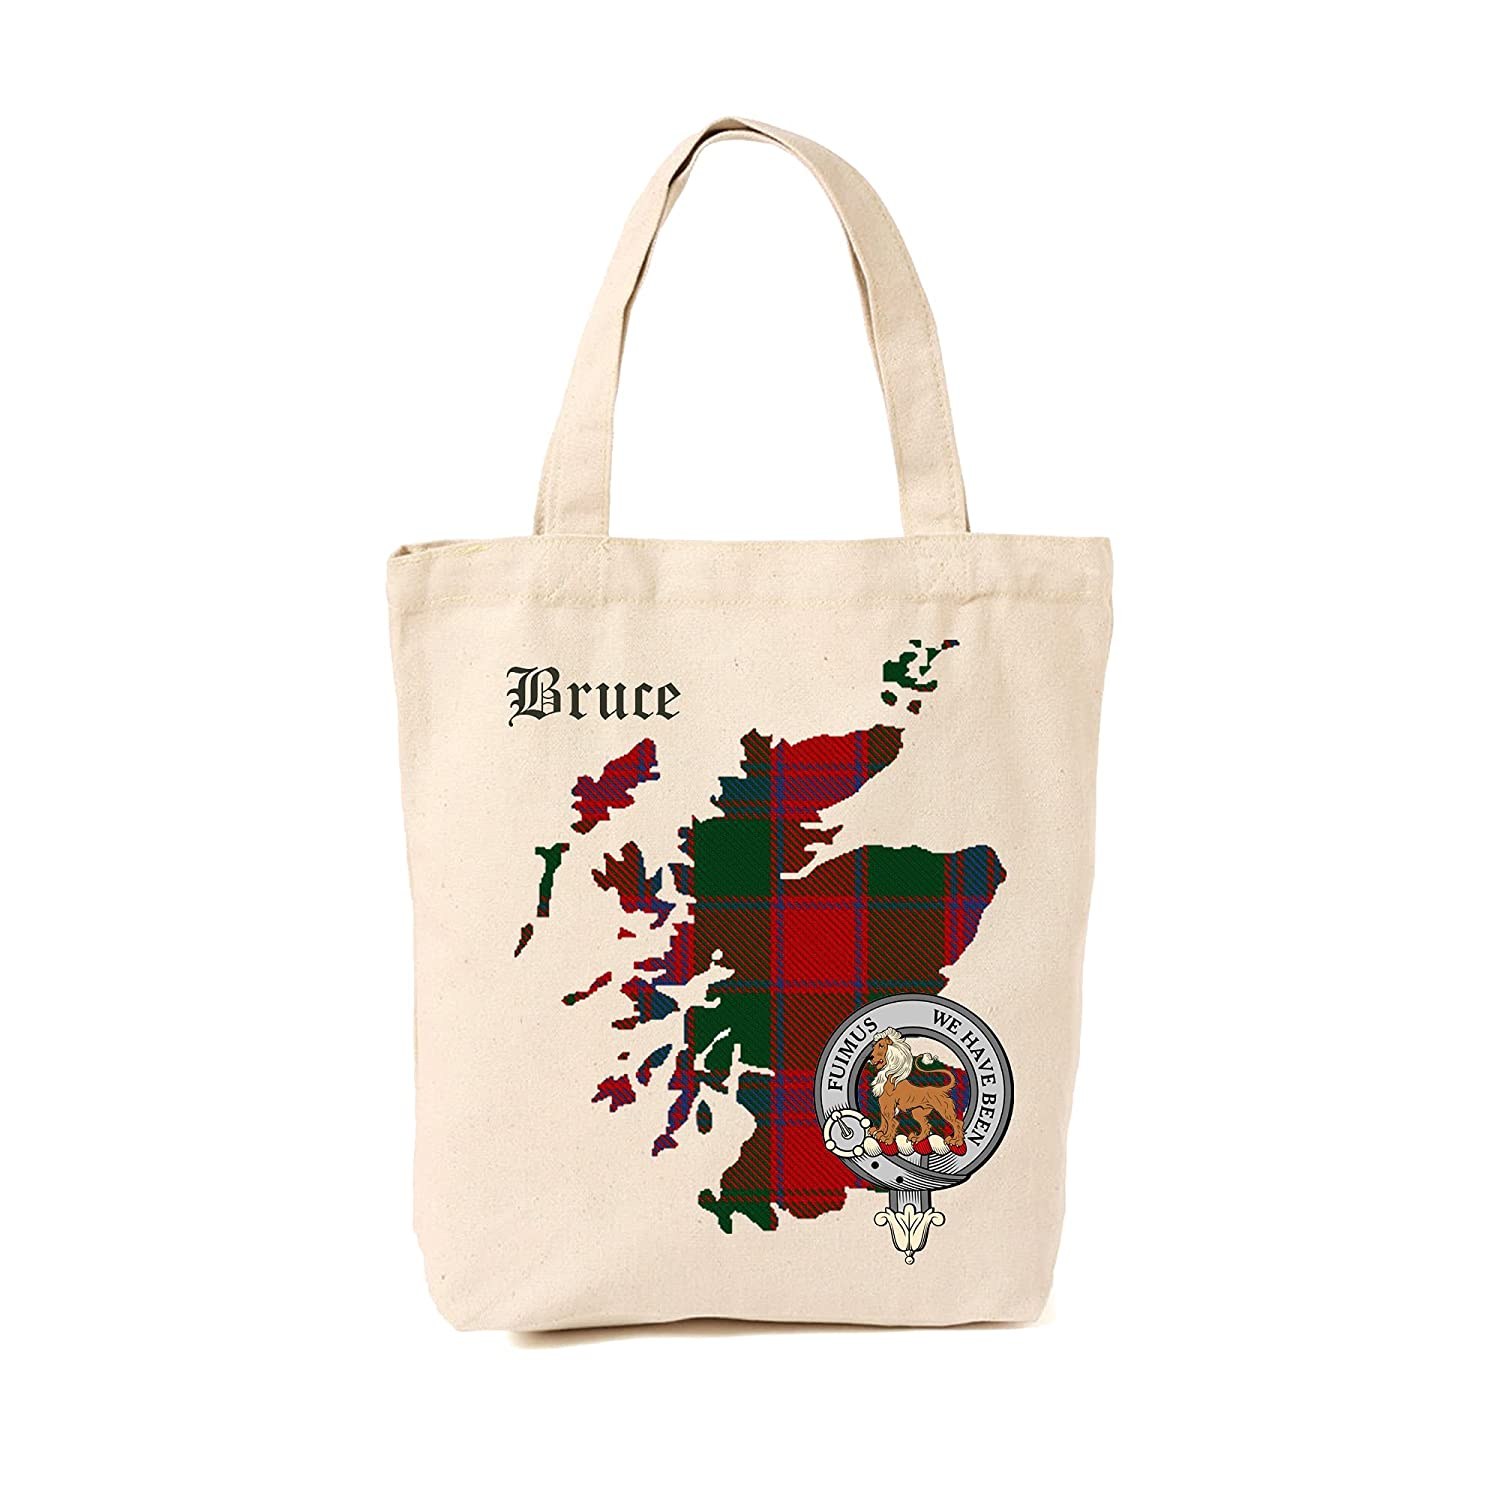 Bruce Scottish Clan Max 54% OFF Selling and selling Tote Bag with Crest Tartan